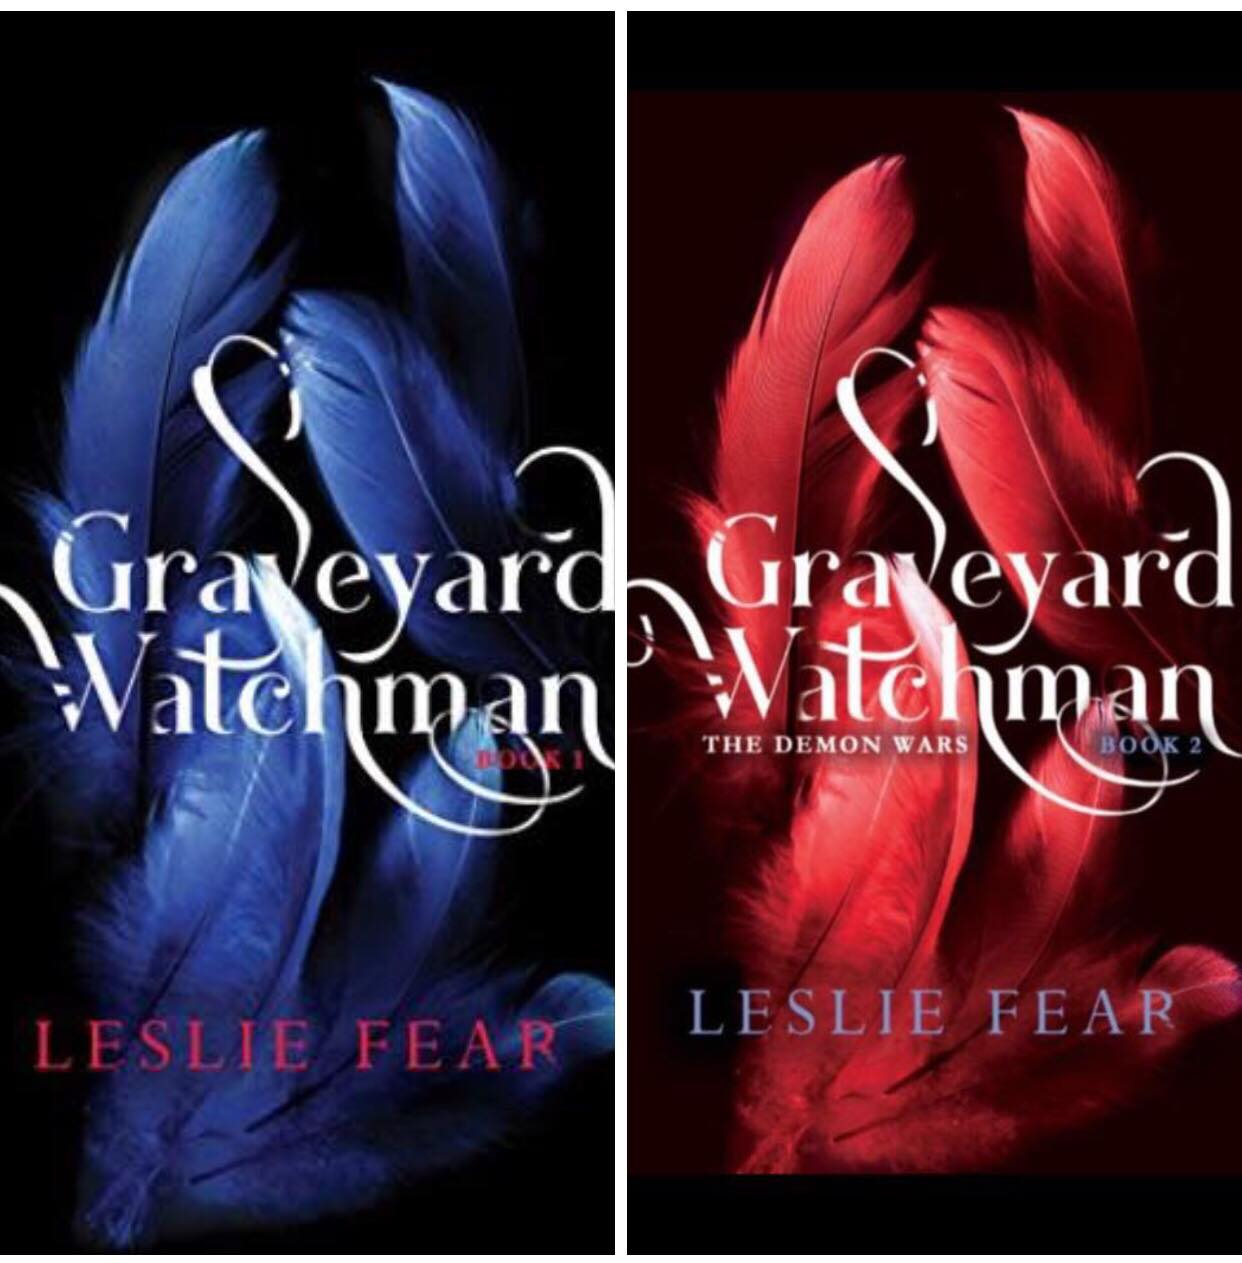 Graveyard Watchman Books 1 And 2 By Leslie Fear